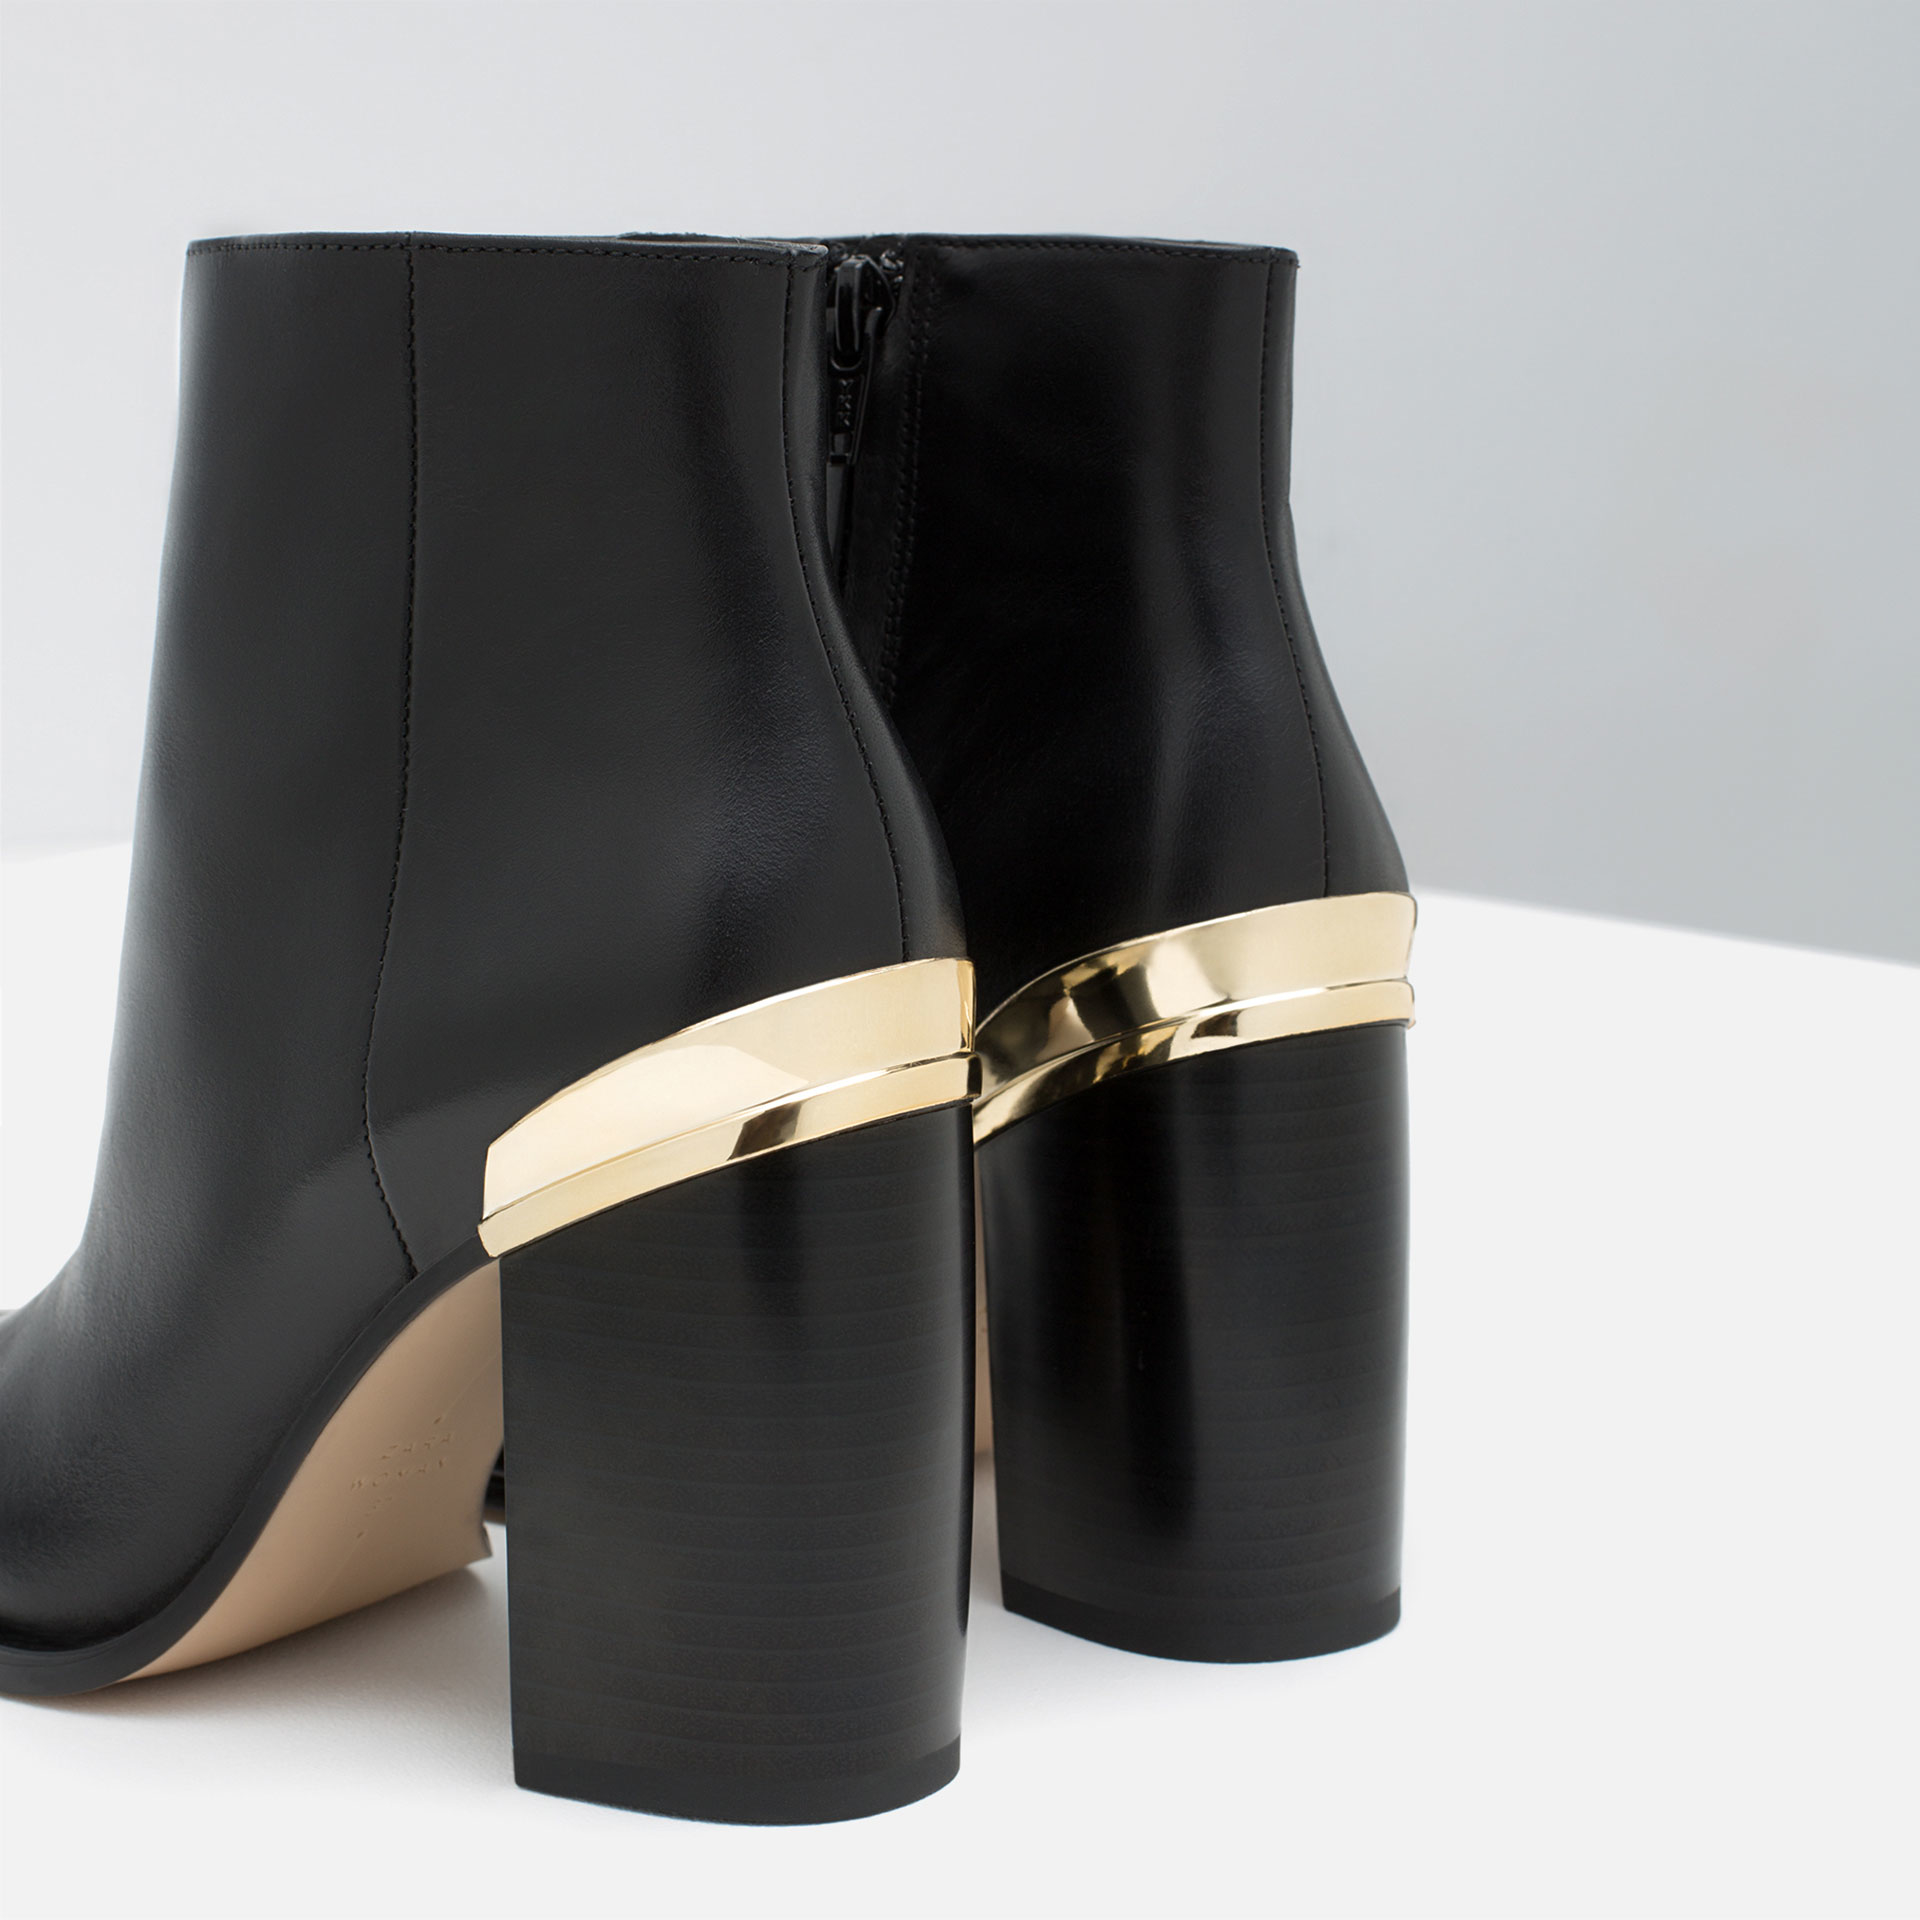 zara high heel leather ankle boots with metallic detail in